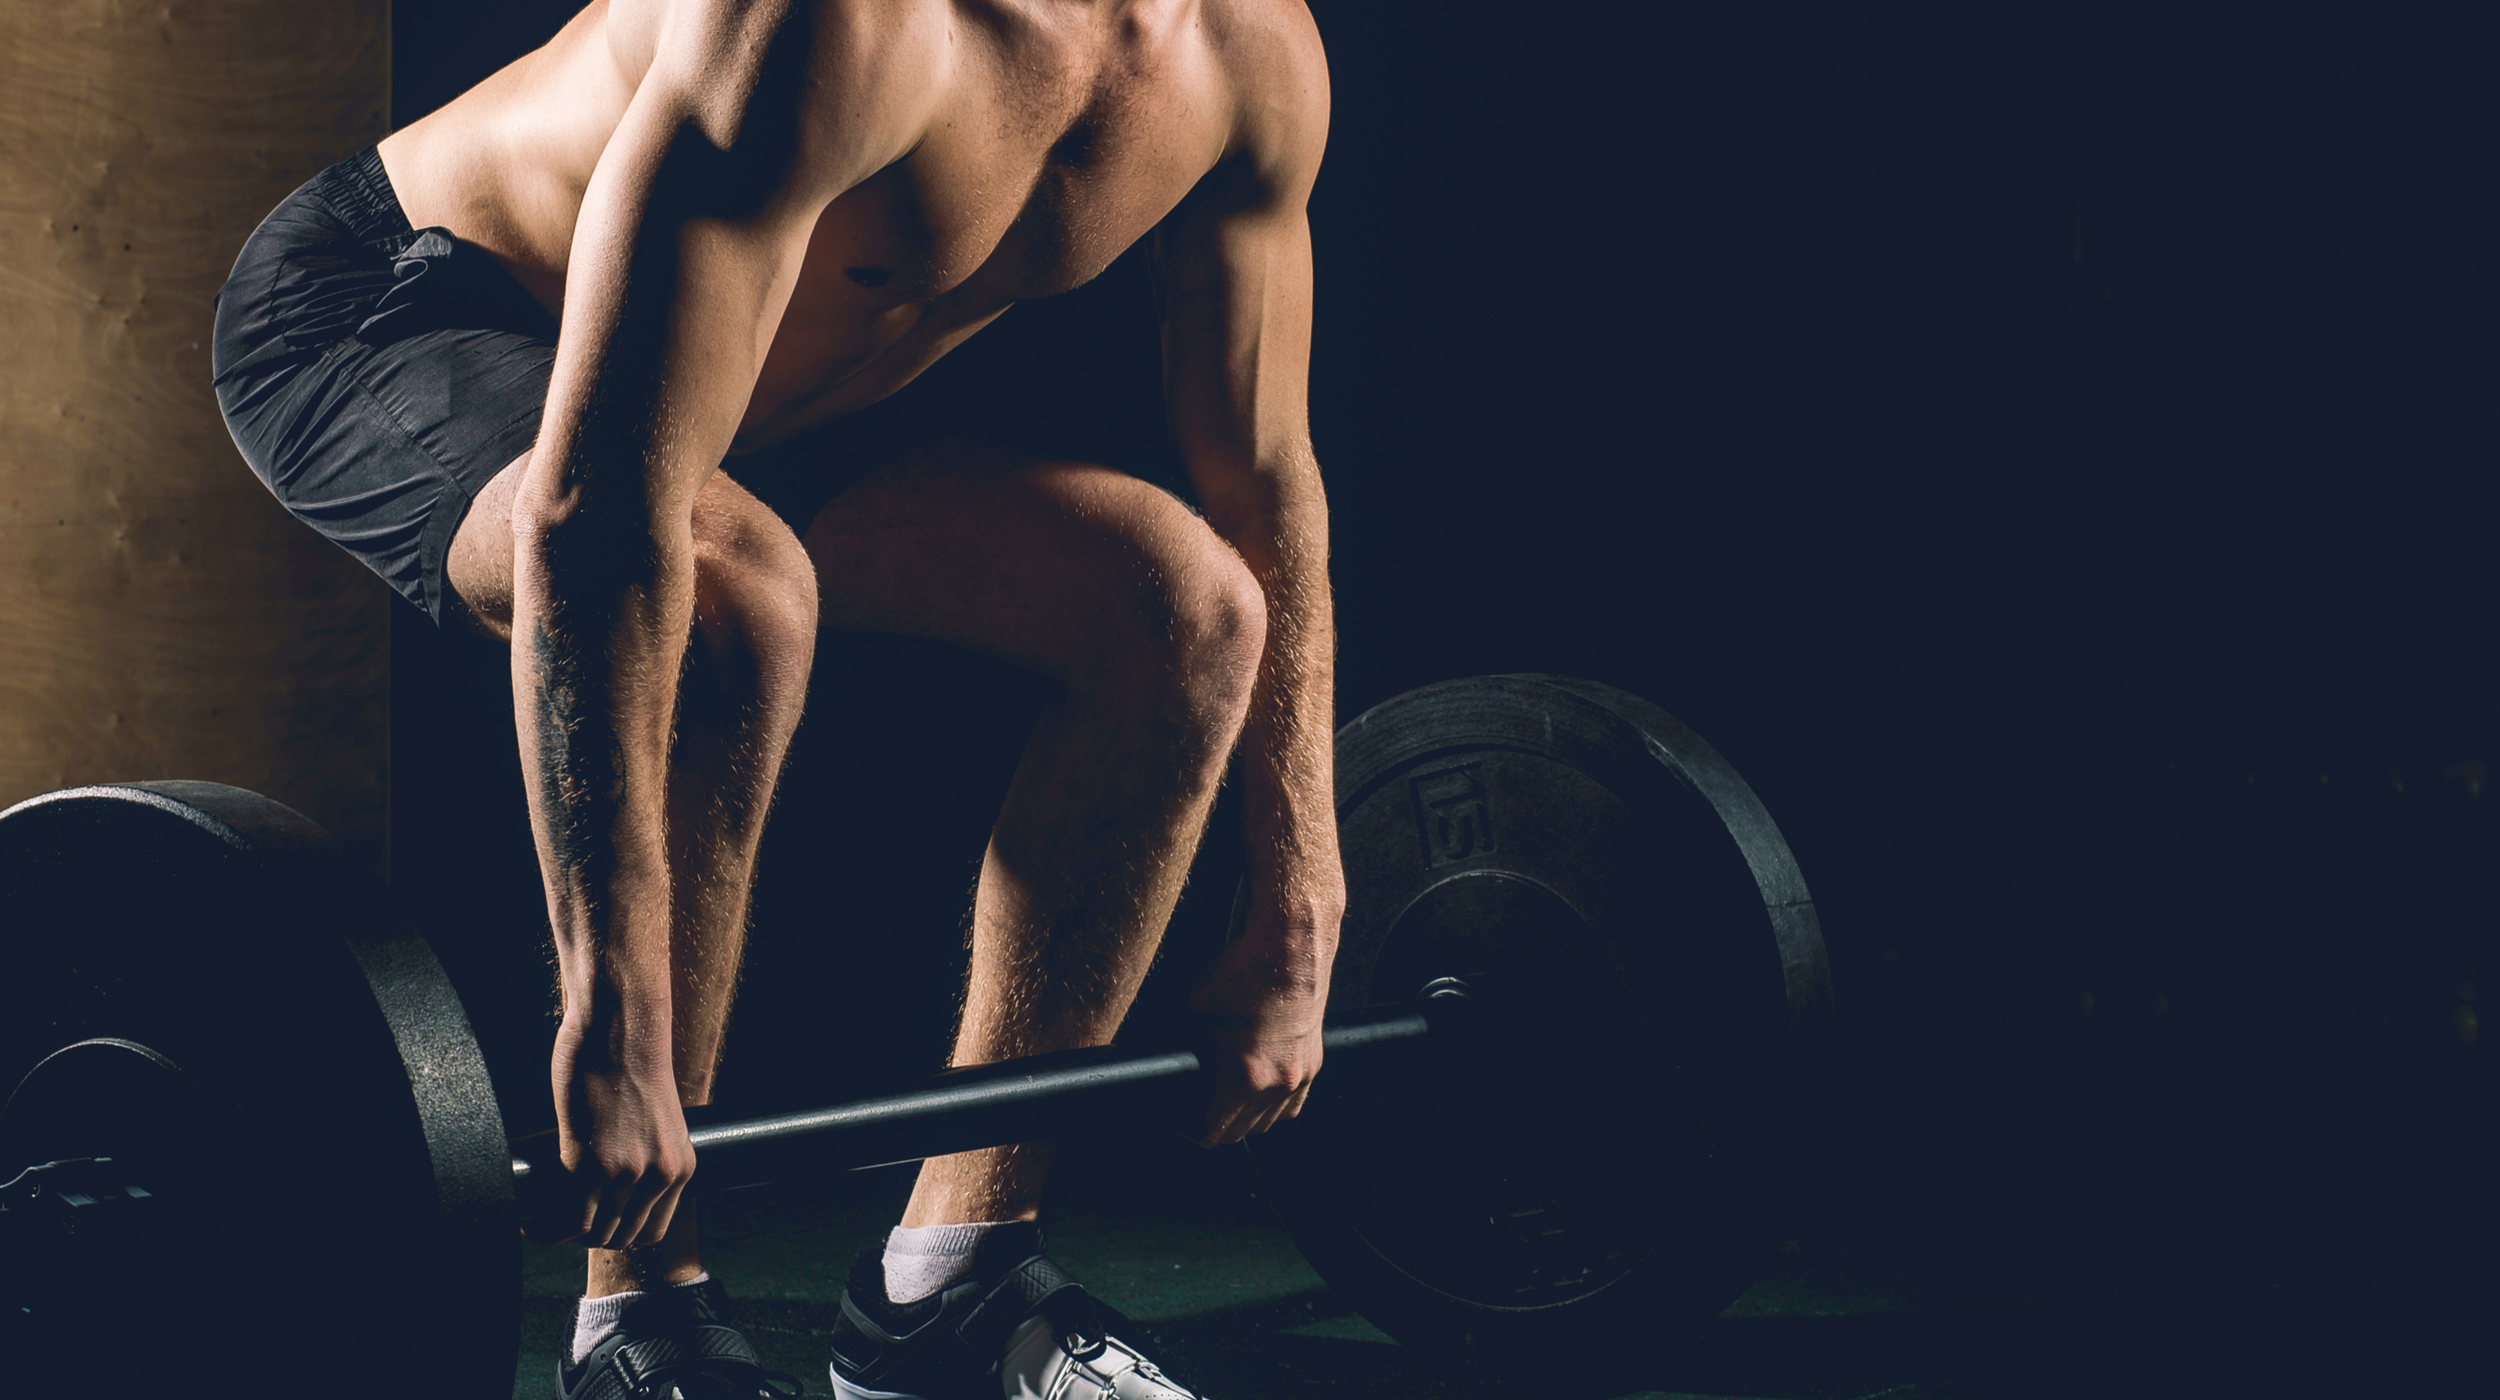 What is a Good Resistance Training Program for a Beginner?